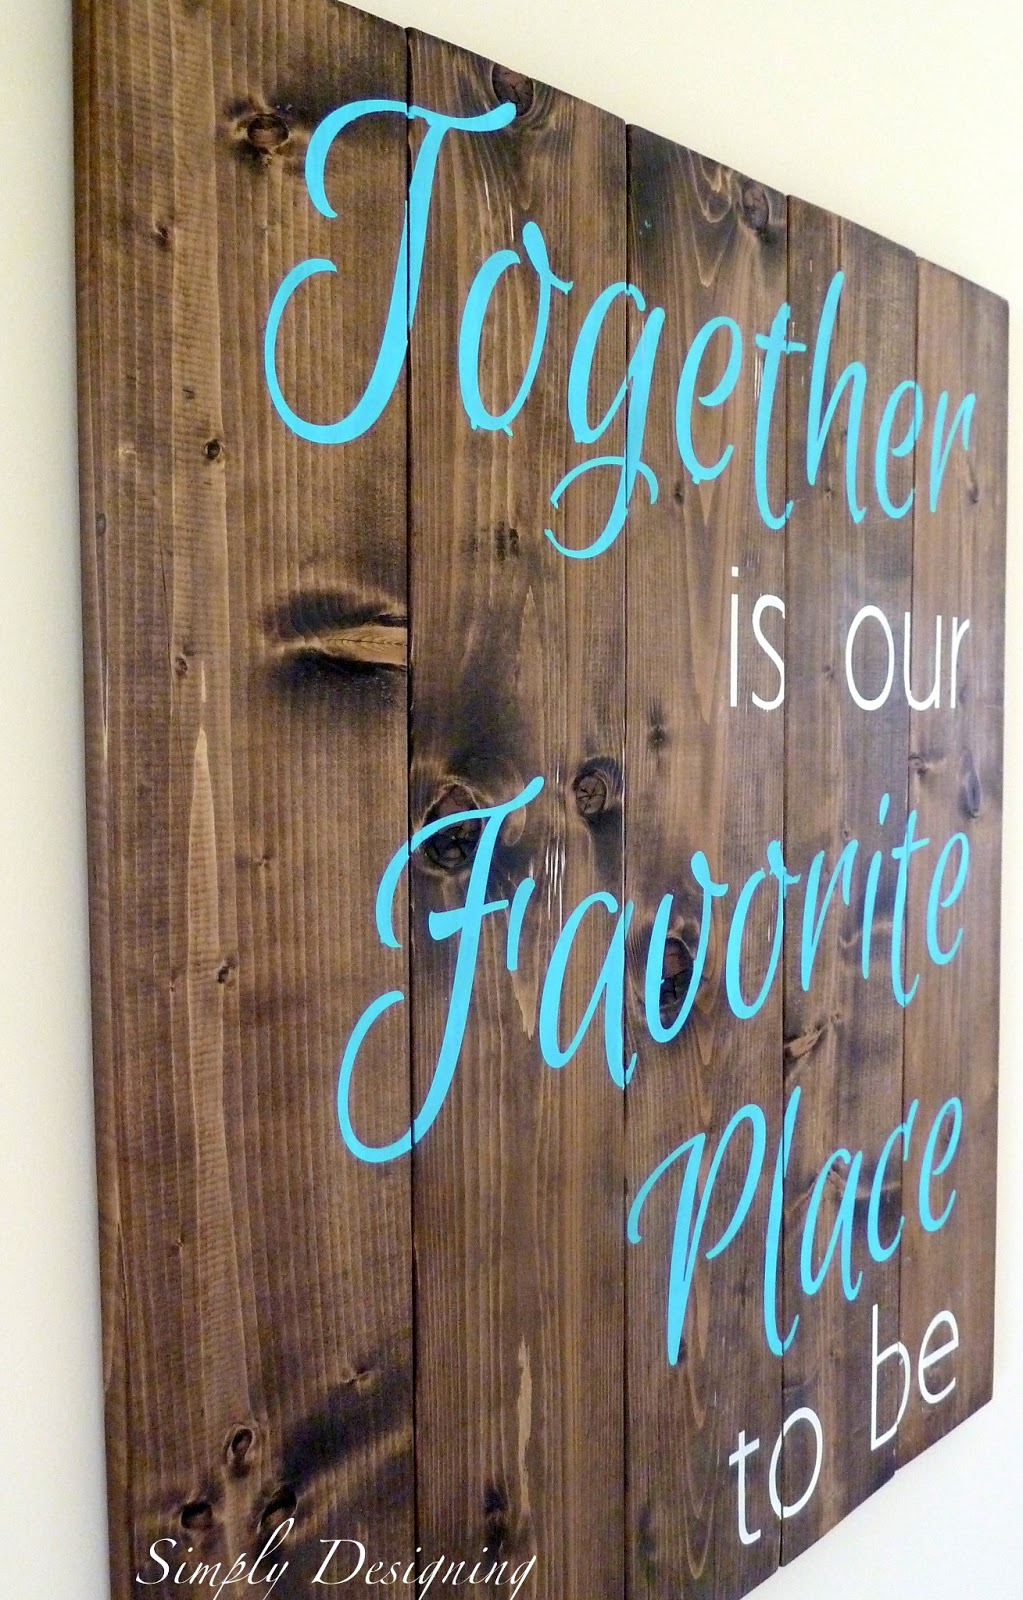 Making Diy Signs From Pallet Wood Is Fun And Easy You Can Customize Your